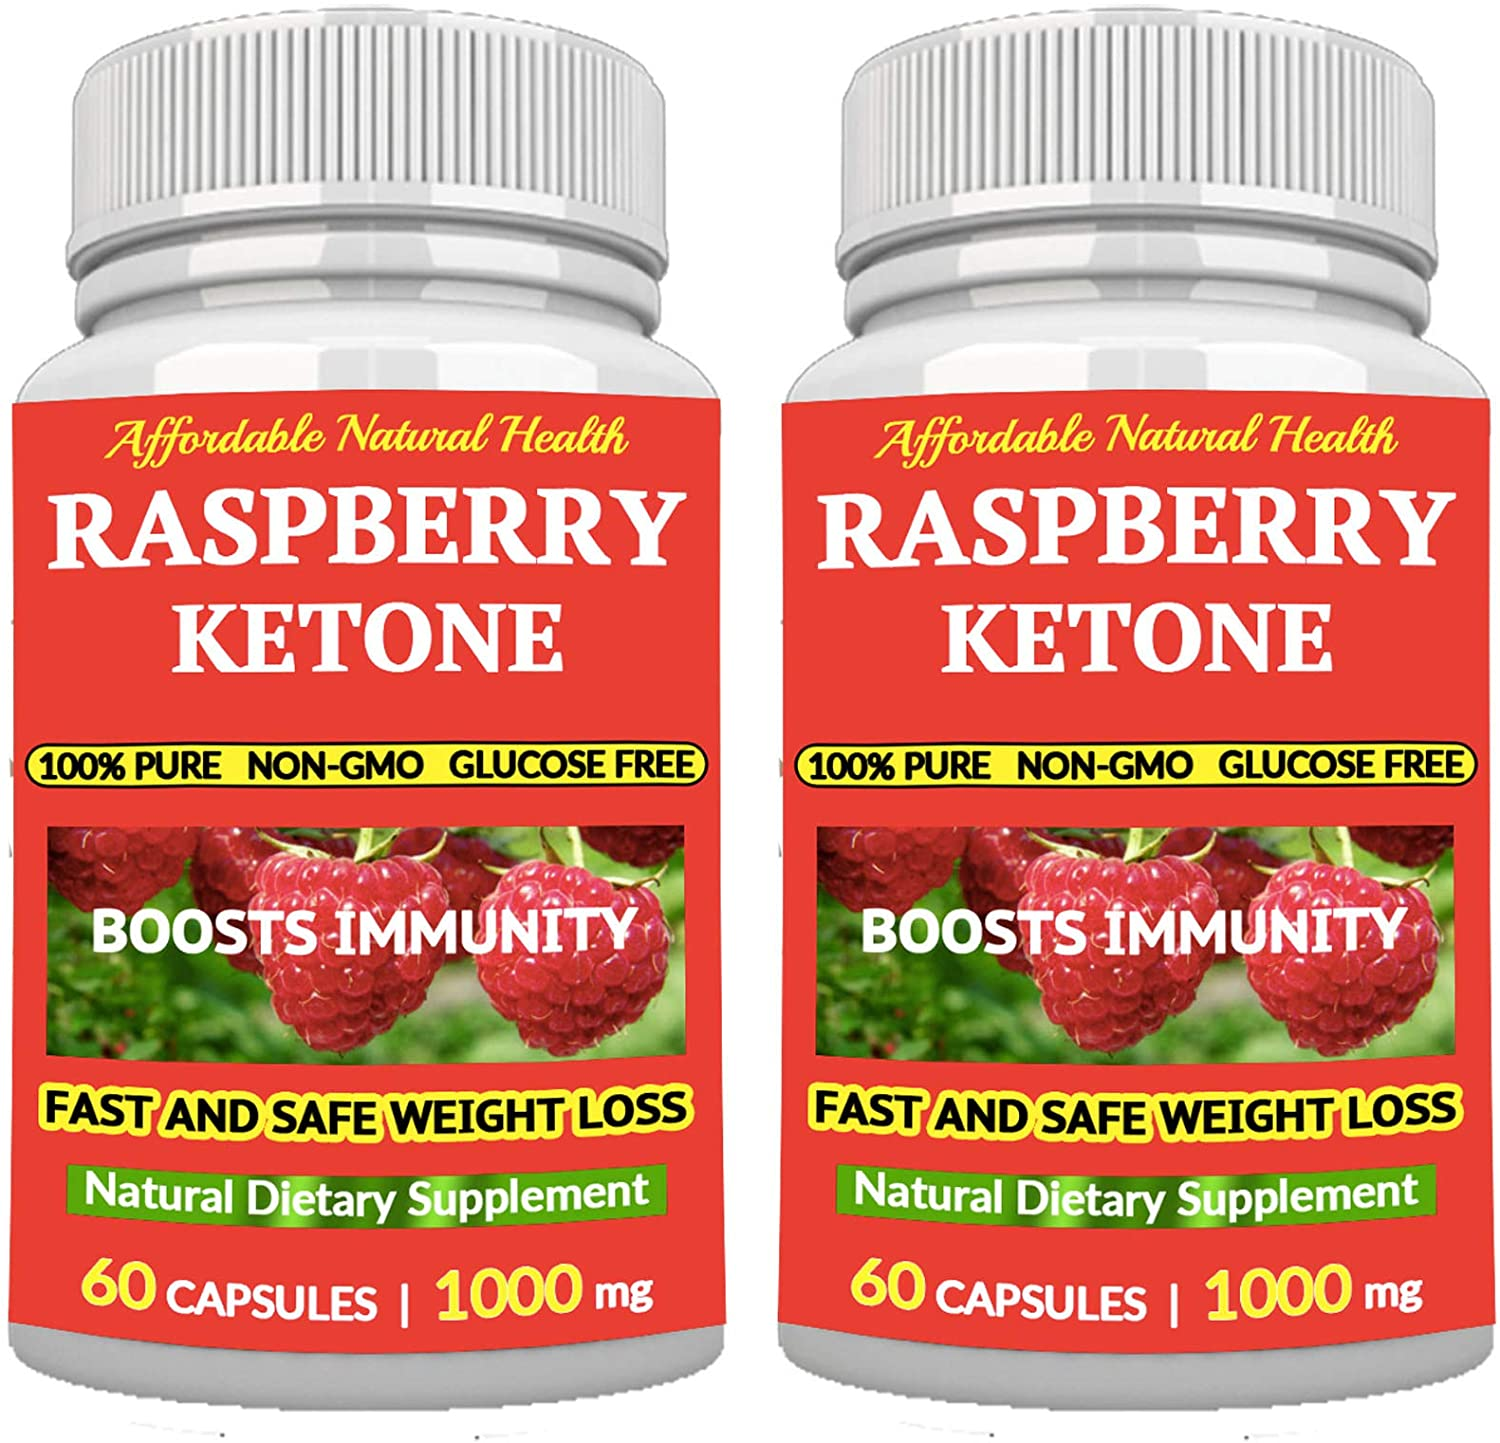 2 Raspberry Ketones - All Natural Weight Loss Supplement - 1000 mg - 120 Capsules - 2-4 Month Supply - 100% Pure - Appetite SUPPRESSANT Diet Pills - BOOSTS Energy and Metabolism